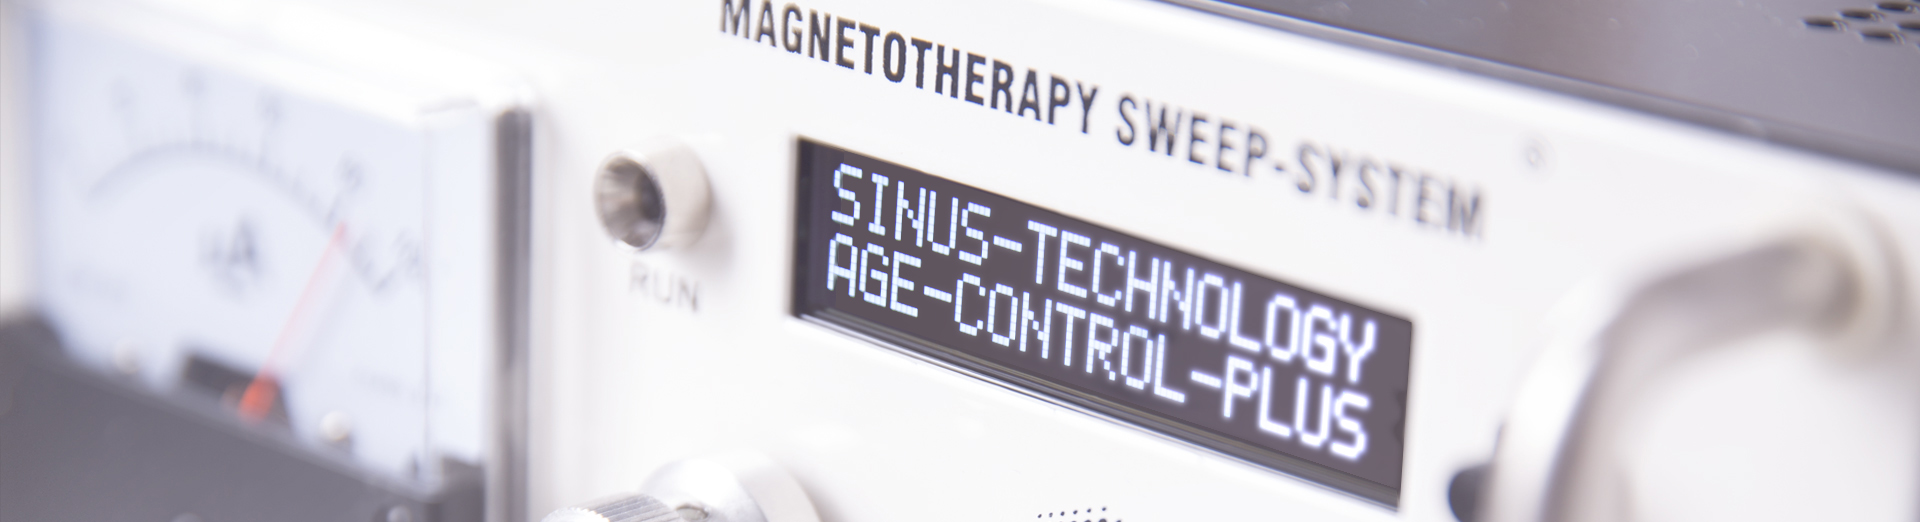 SINUS-TECHNOLOGY MAGNETOTHERAPY